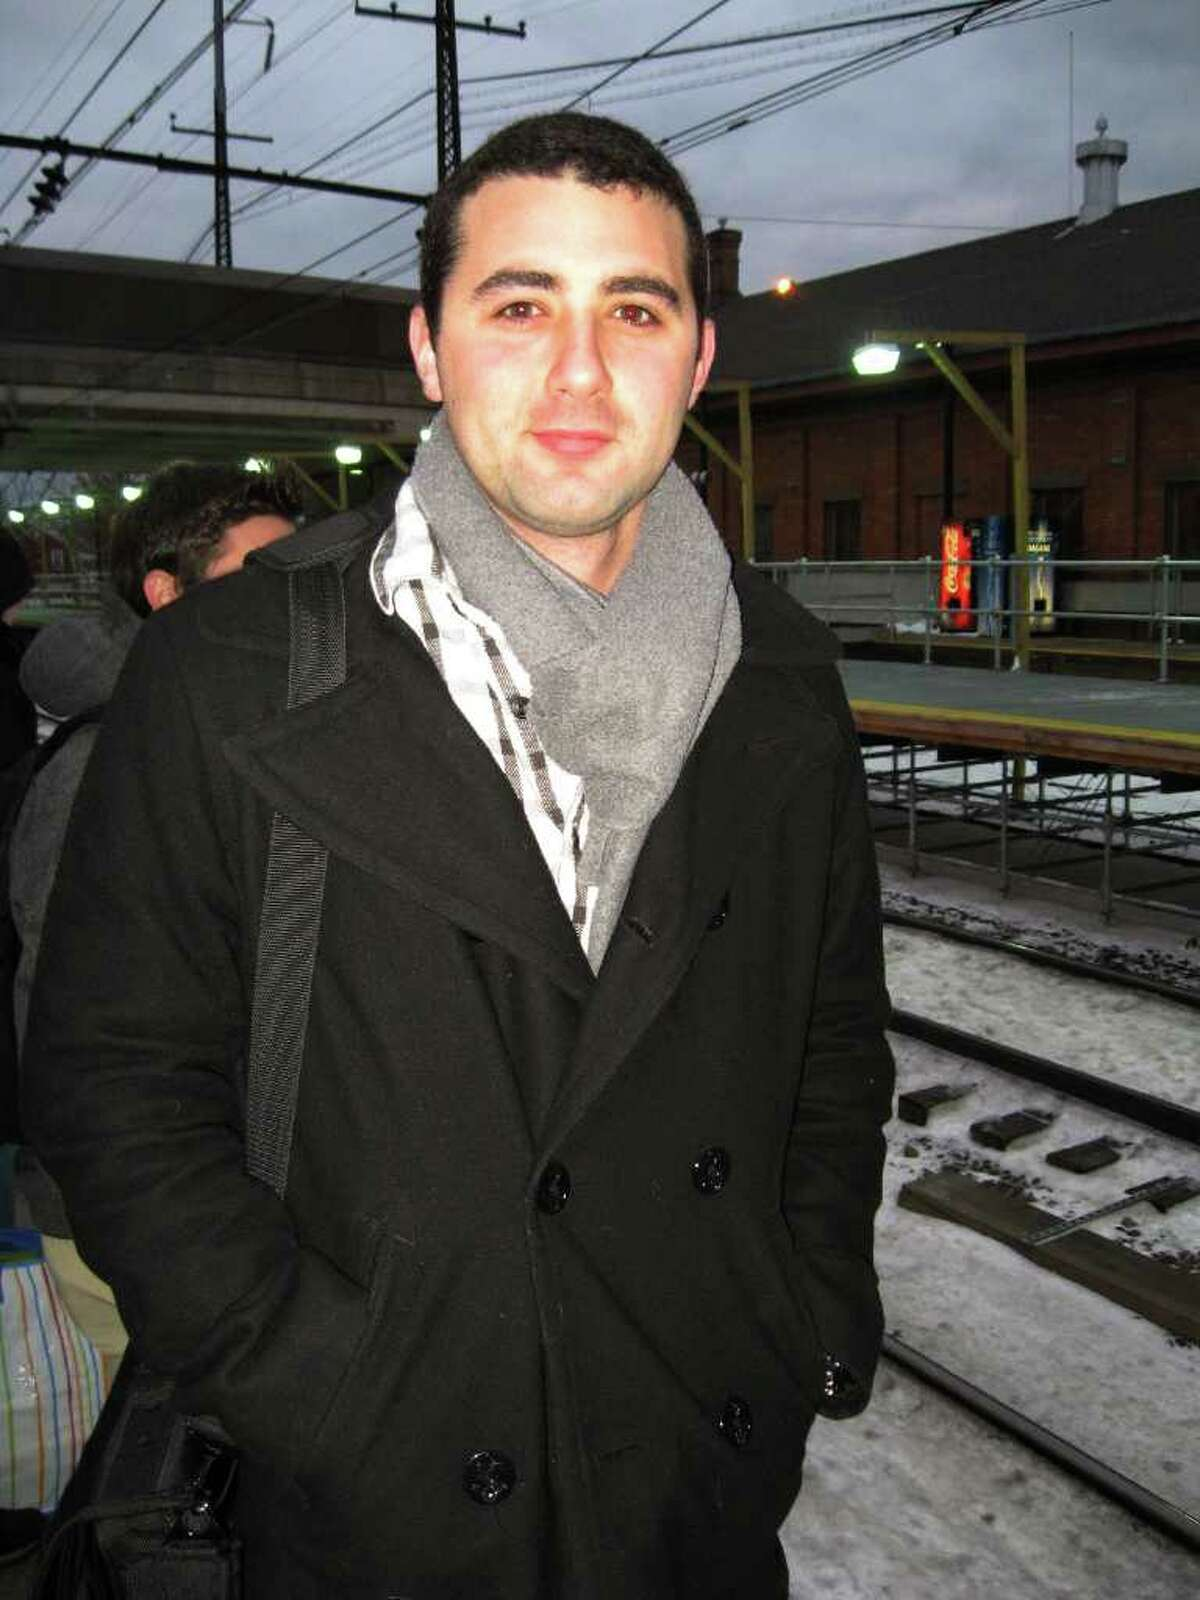 Ryan Fernandez waiting for a train in Fairfield, said that even though ticket prices are going up in January,